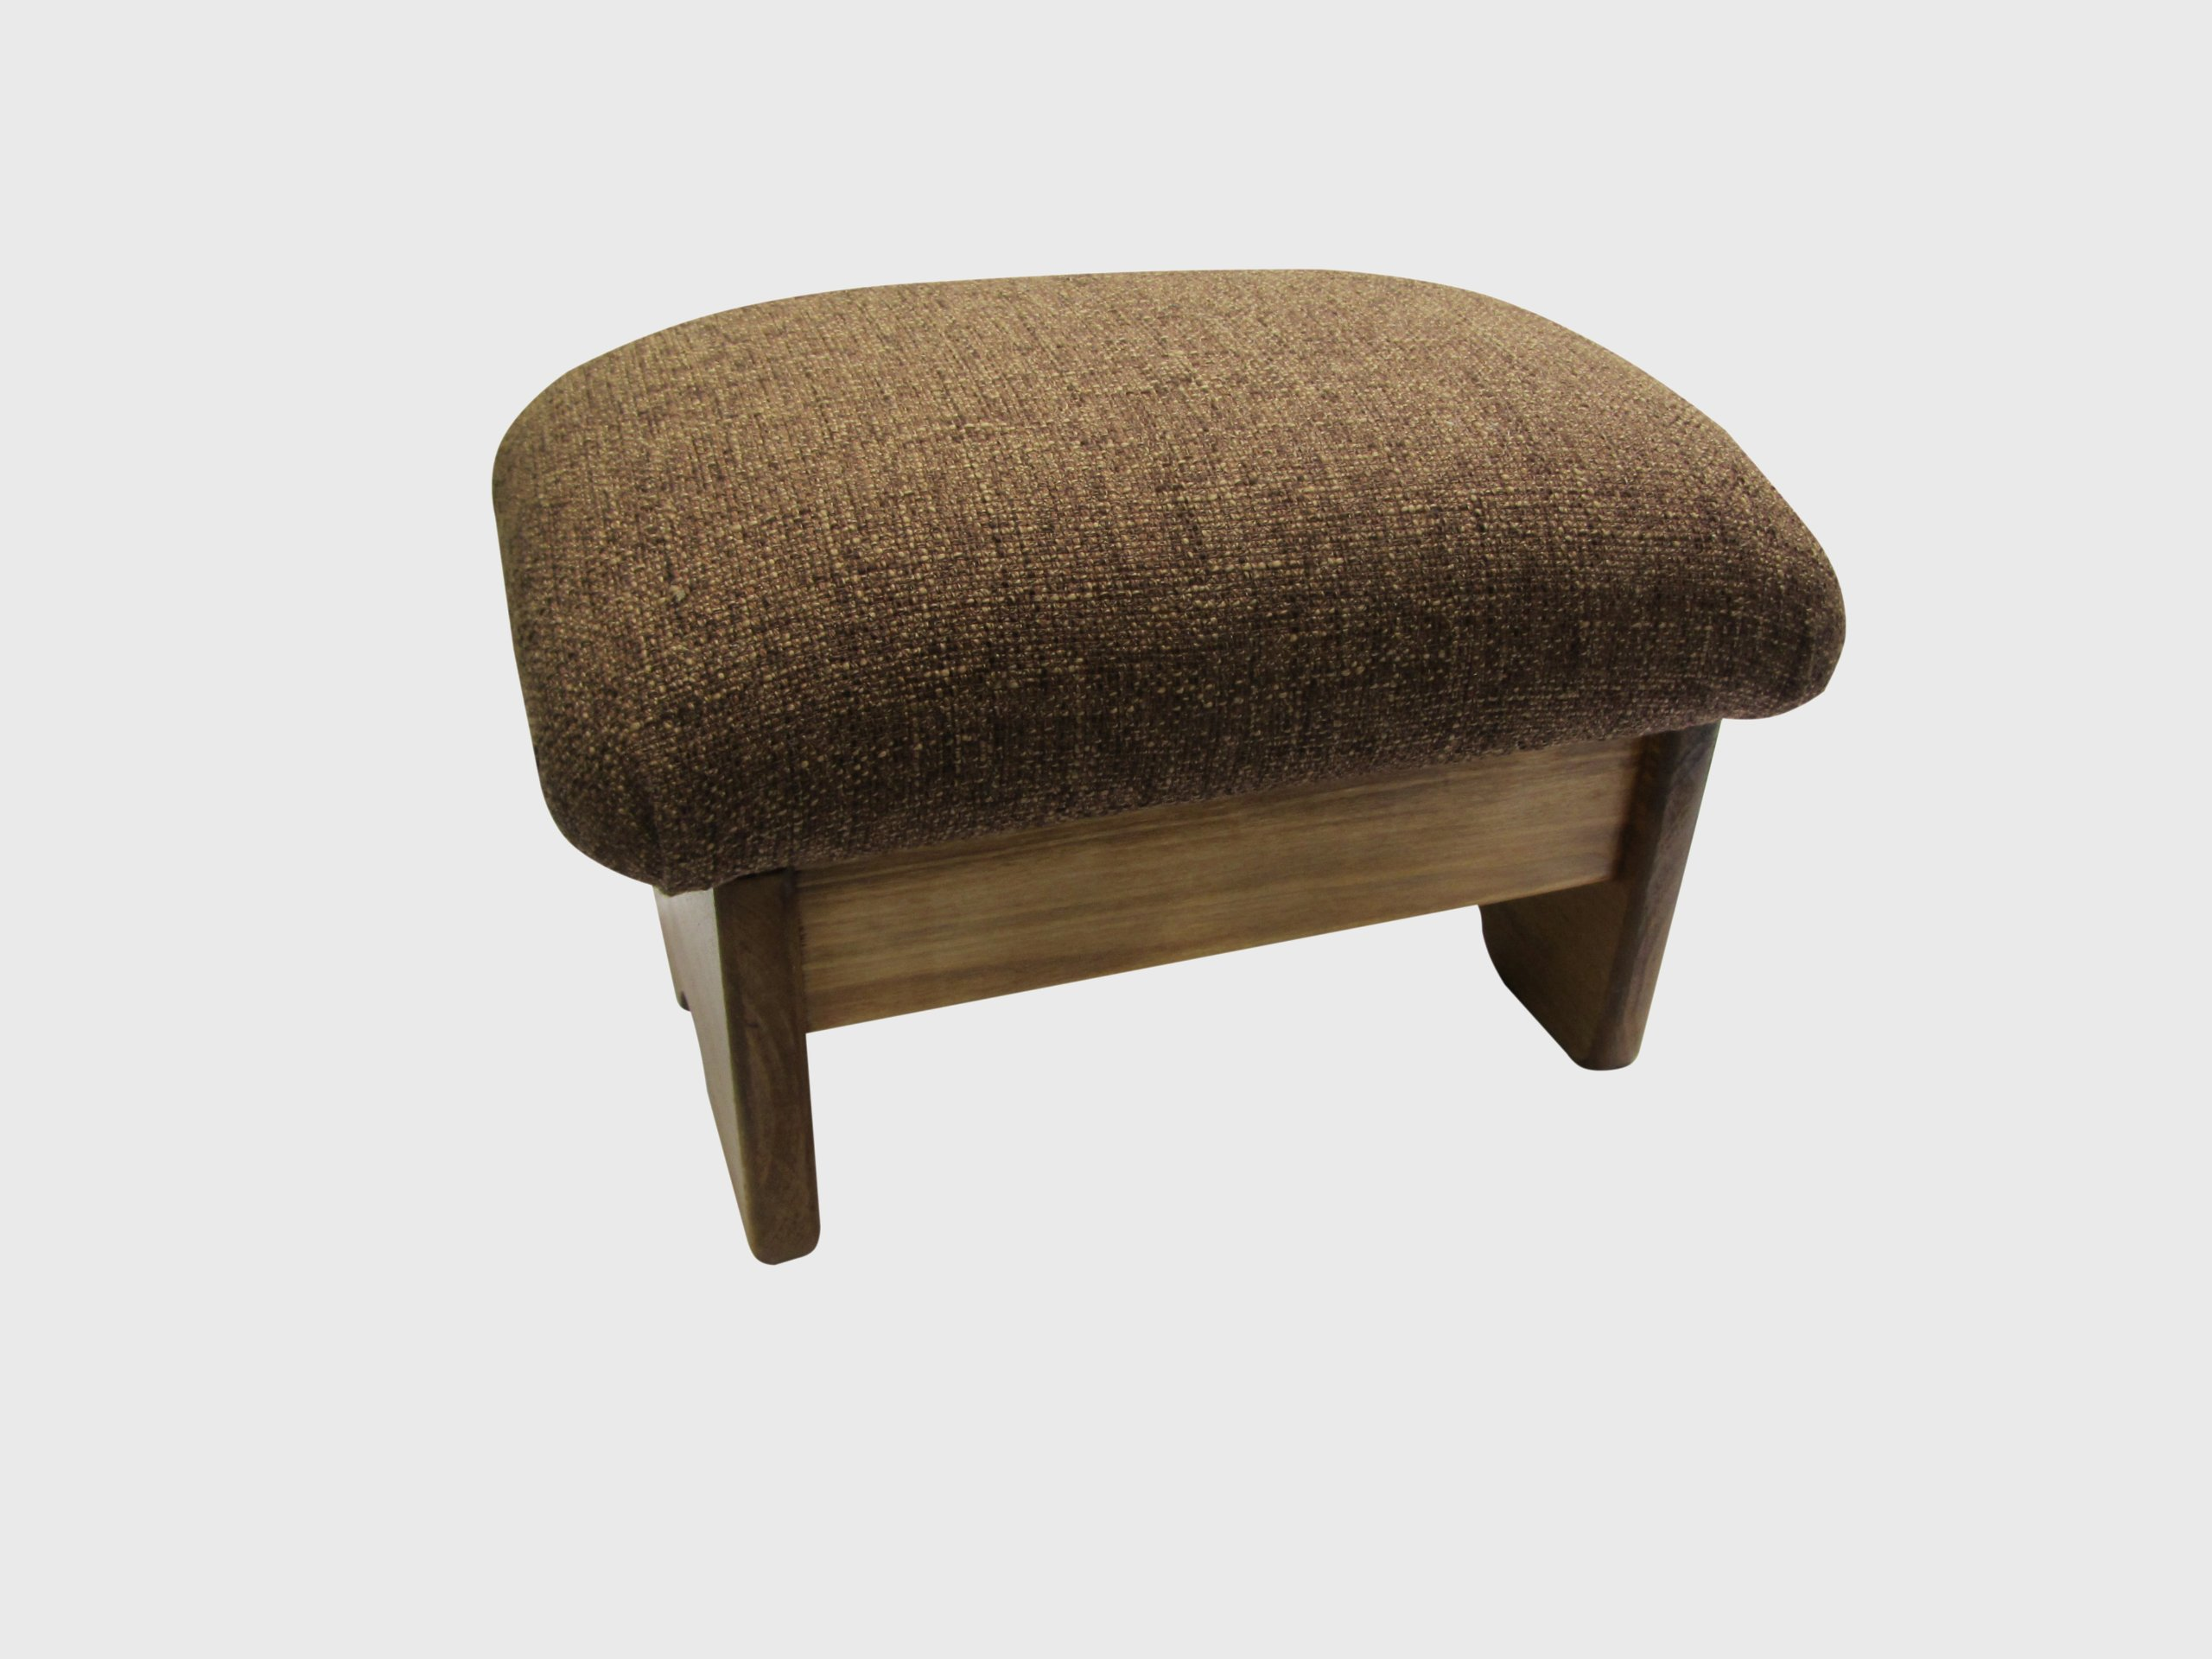 KR Ideas Regular Padded Foot Stool - Various Fabrics and Stains (Made in the USA) (Cocoa Brown, Maple Stain, 12'' Tall)